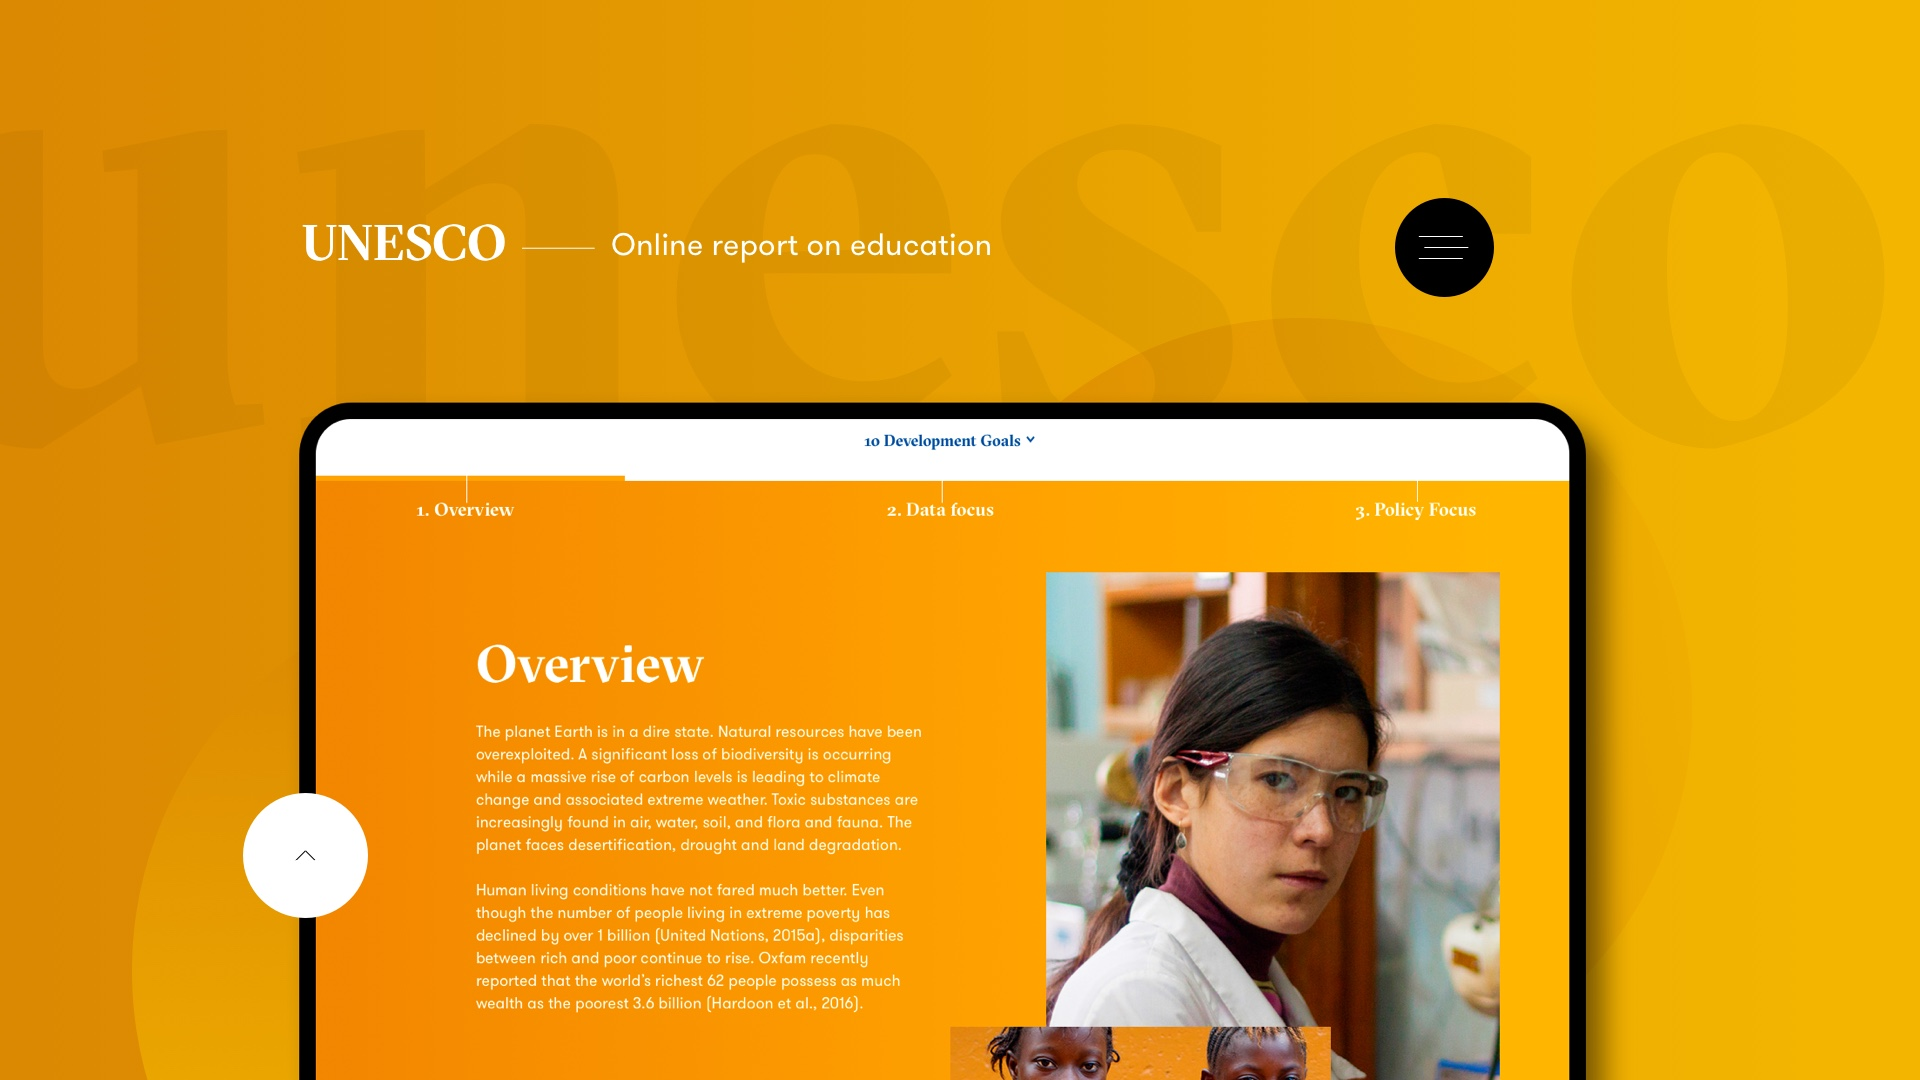 UNESCO: Online report on education